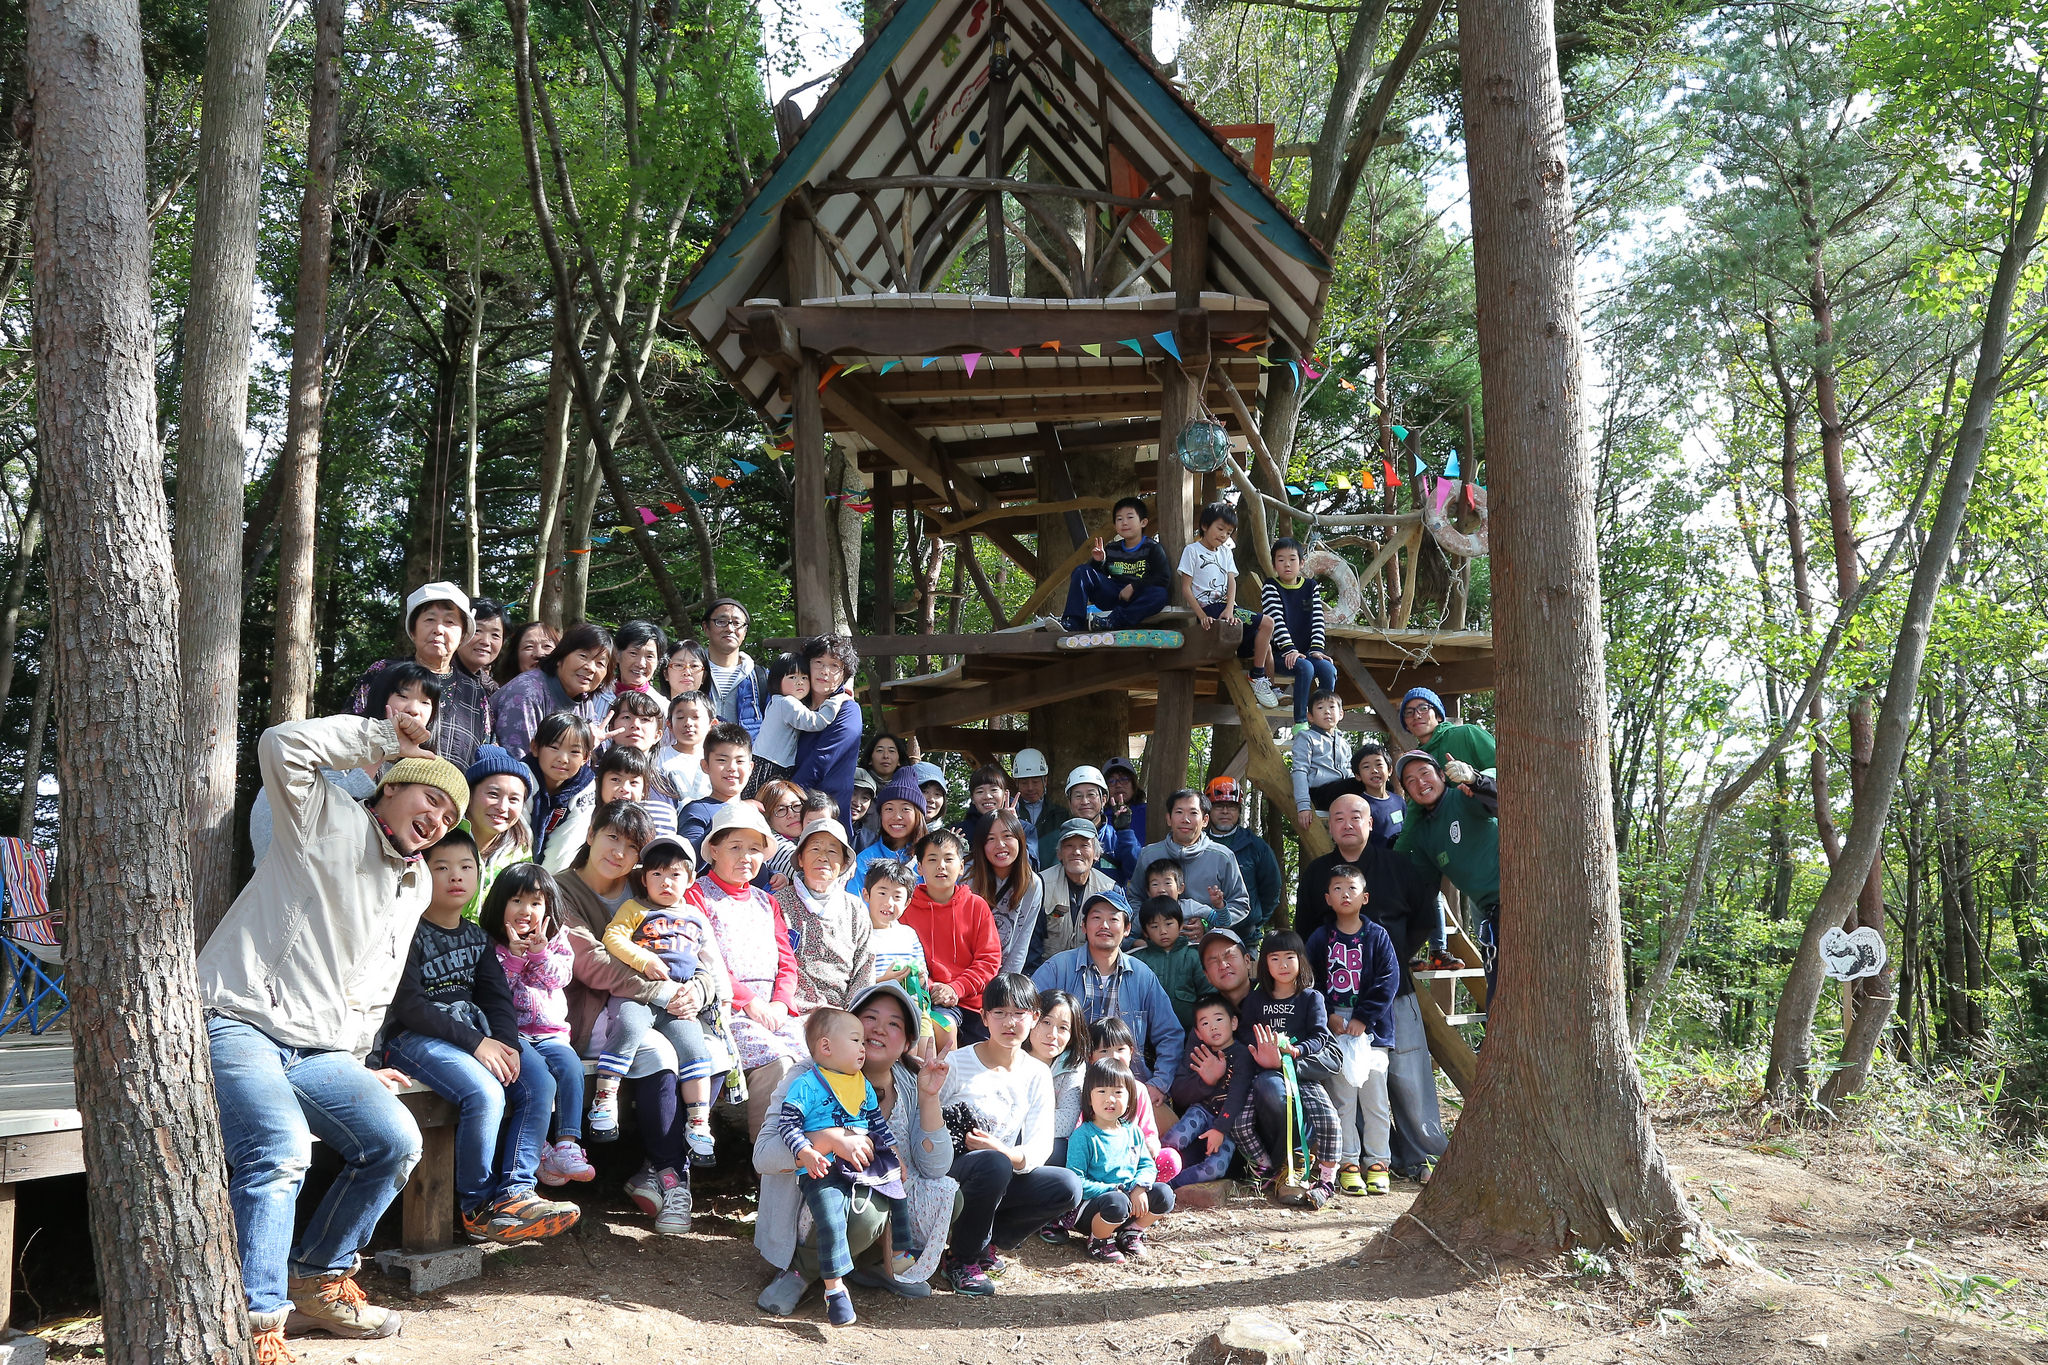 photograph of a group of people and children posing in front of a tree-house